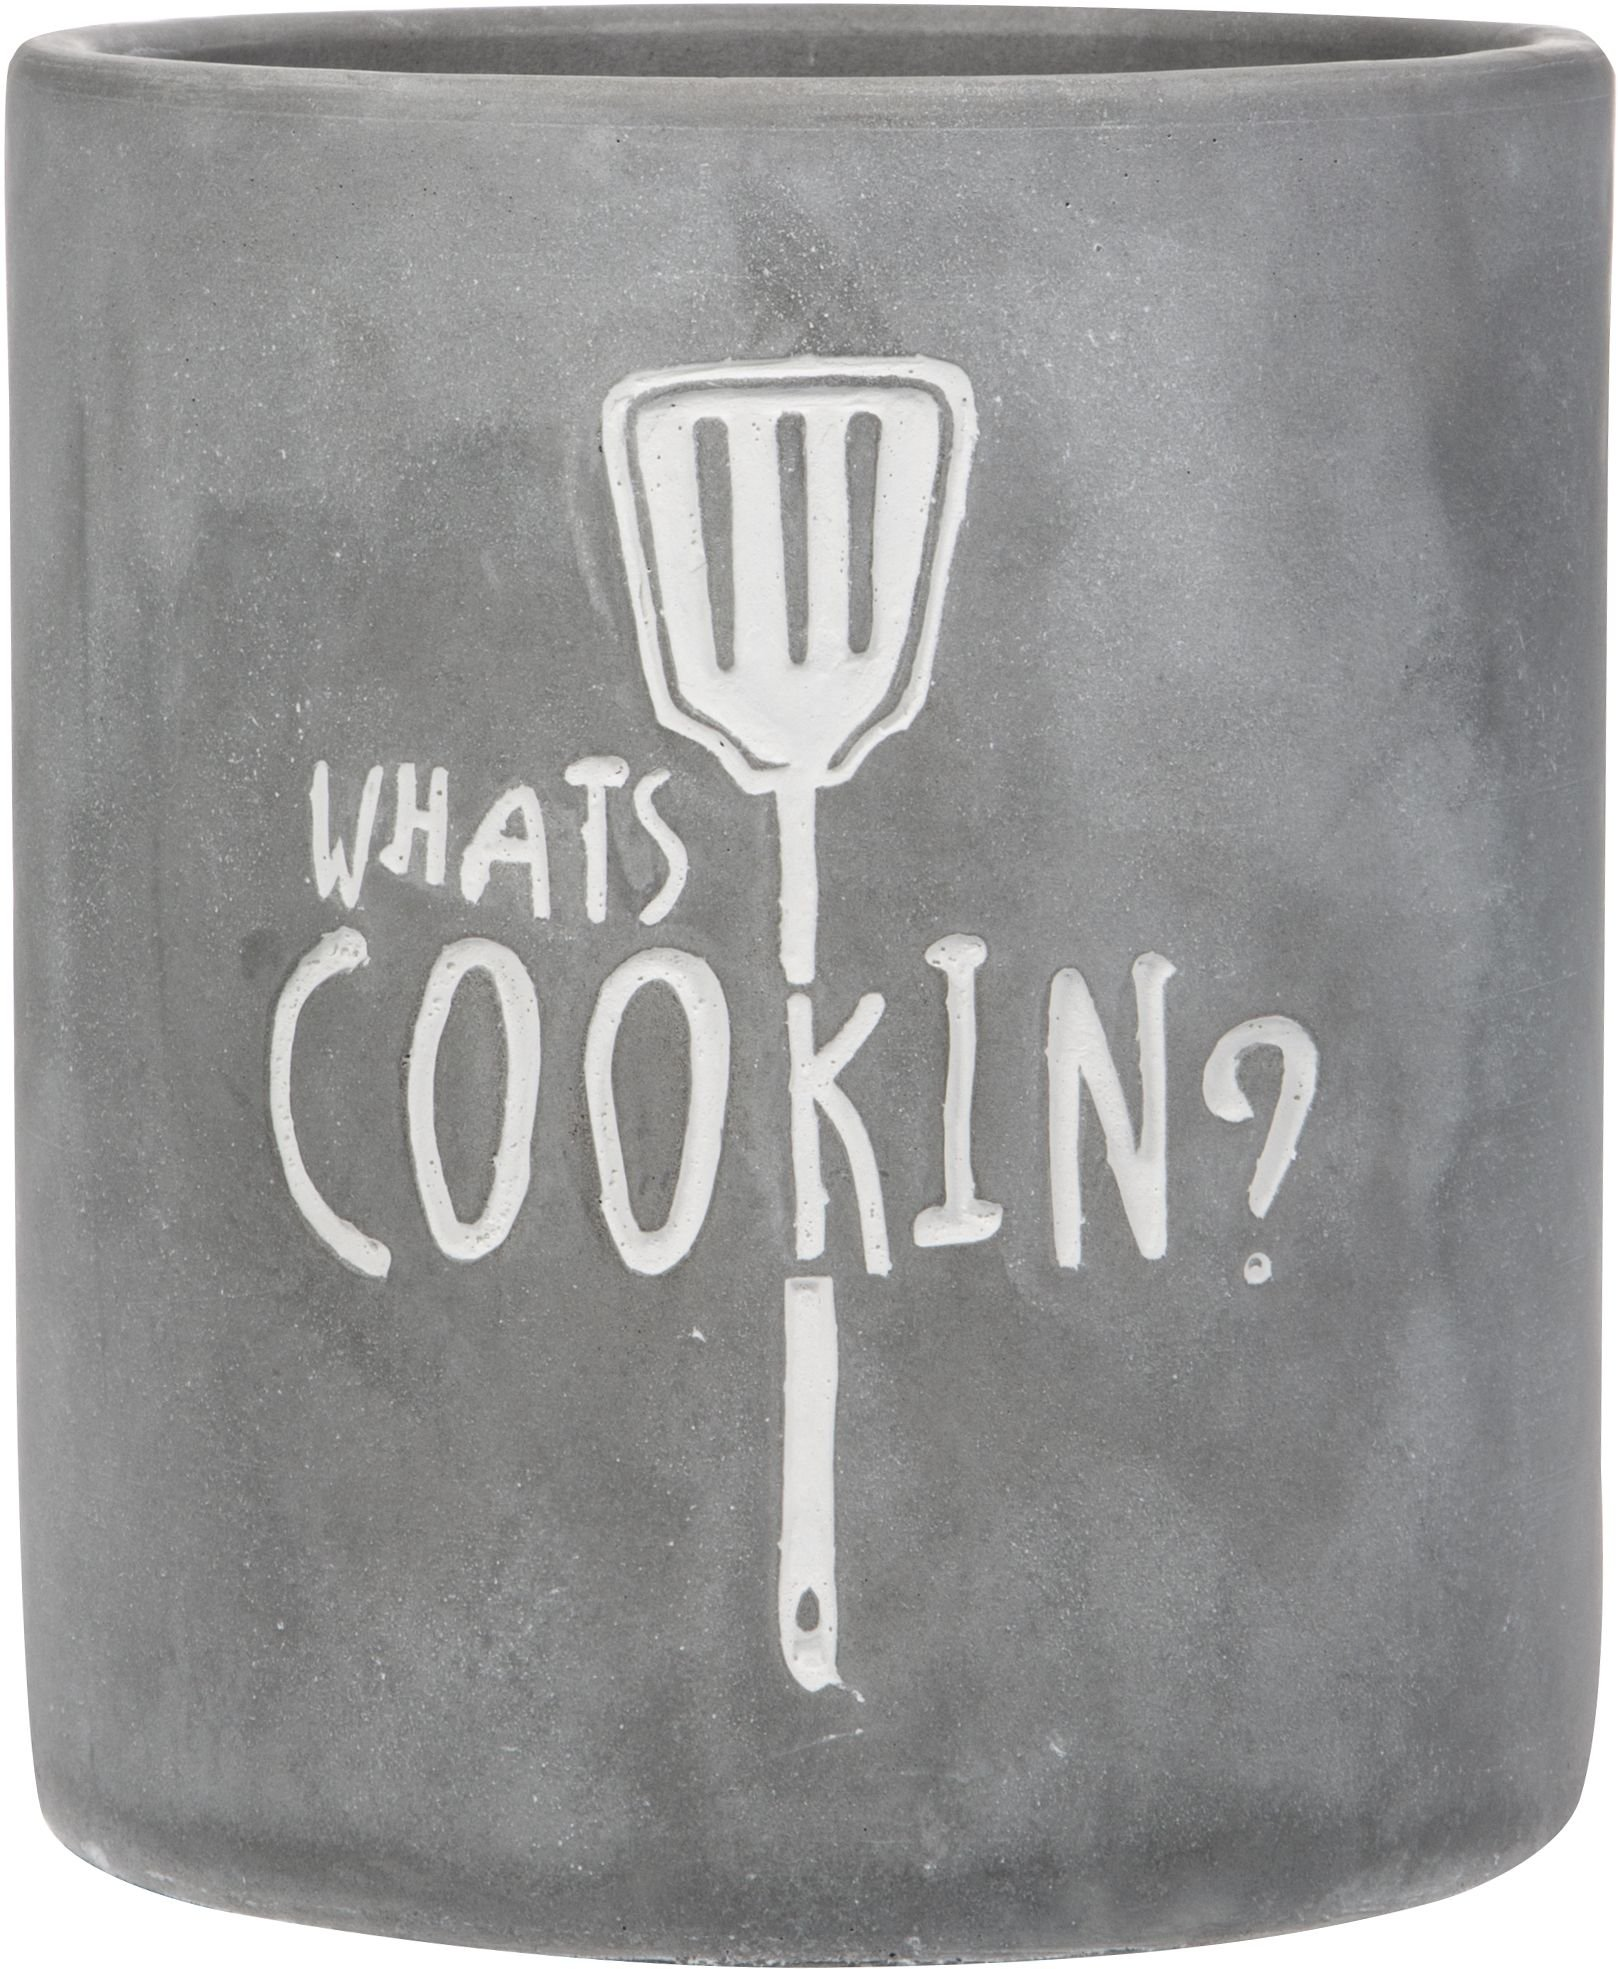 Home Essentials Round Modern Concrete Gray Utensils Crock ''Whats Cooking'' by Home Essentials